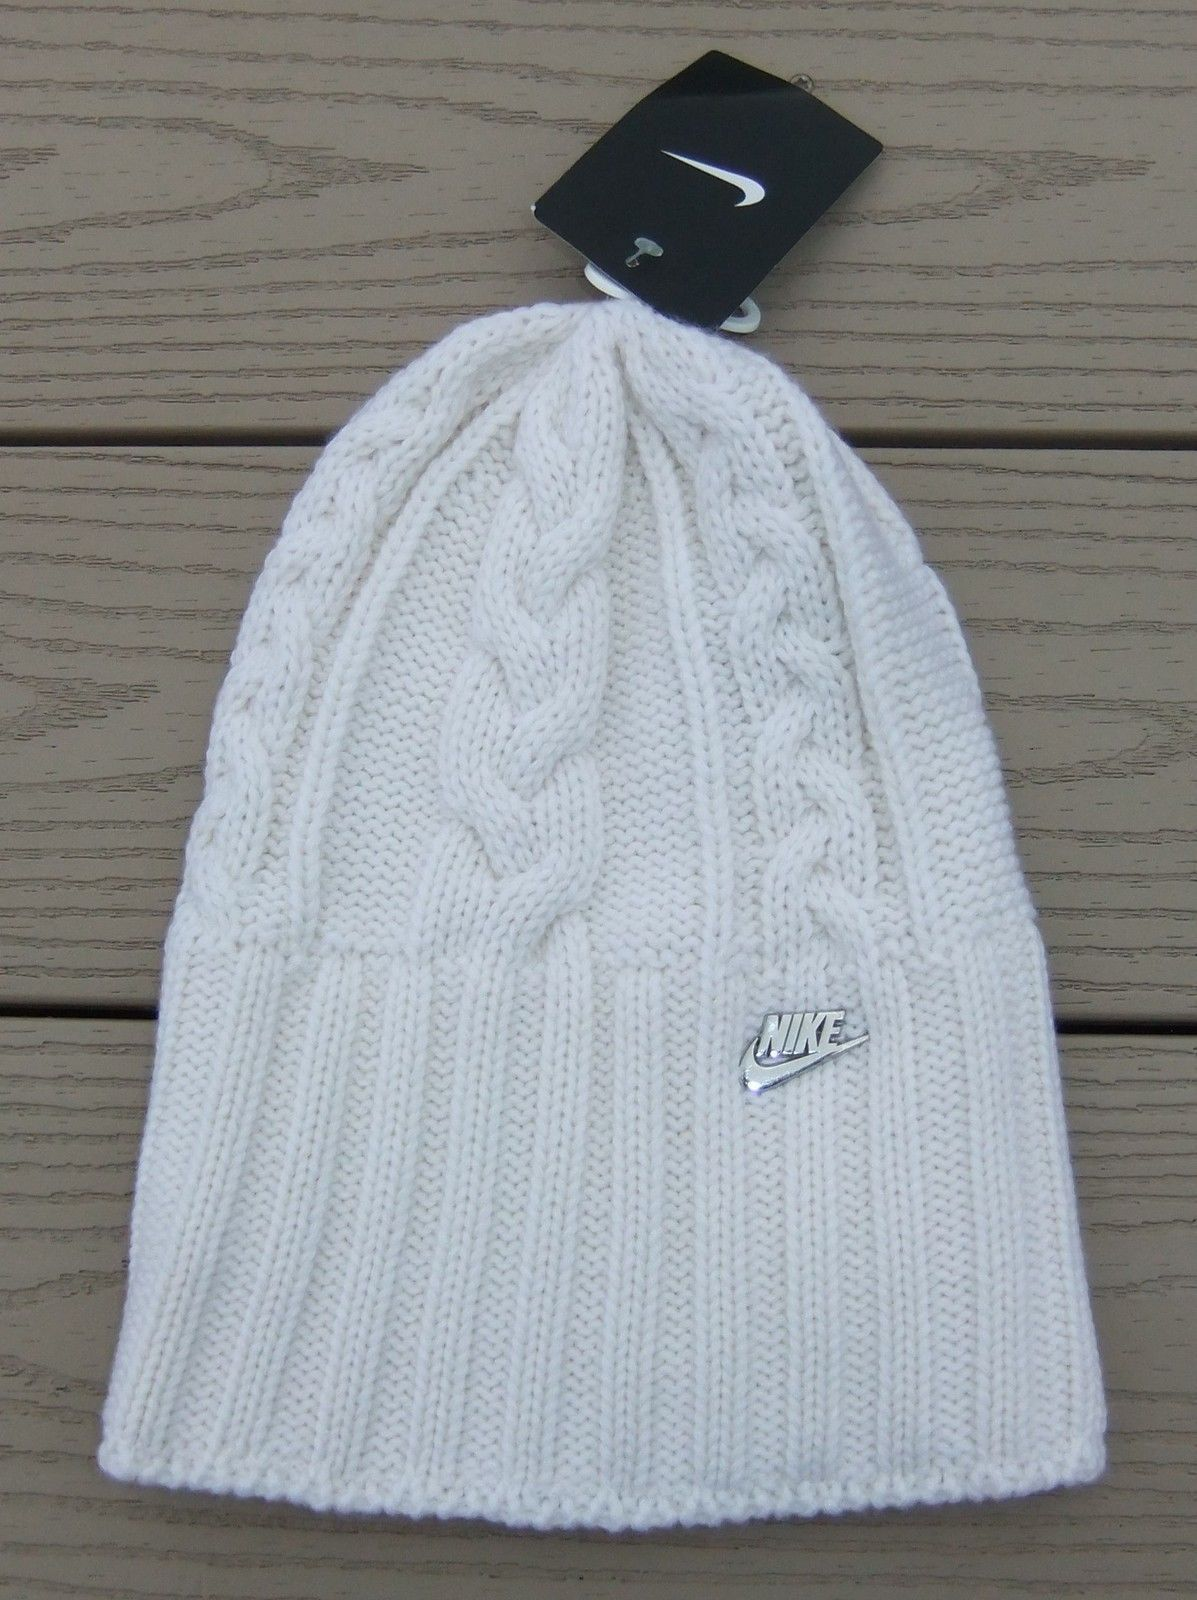 c29b88c0f Details about NWT NIKE Cable Knit Womens Fleece Lined Beanie Hat ...